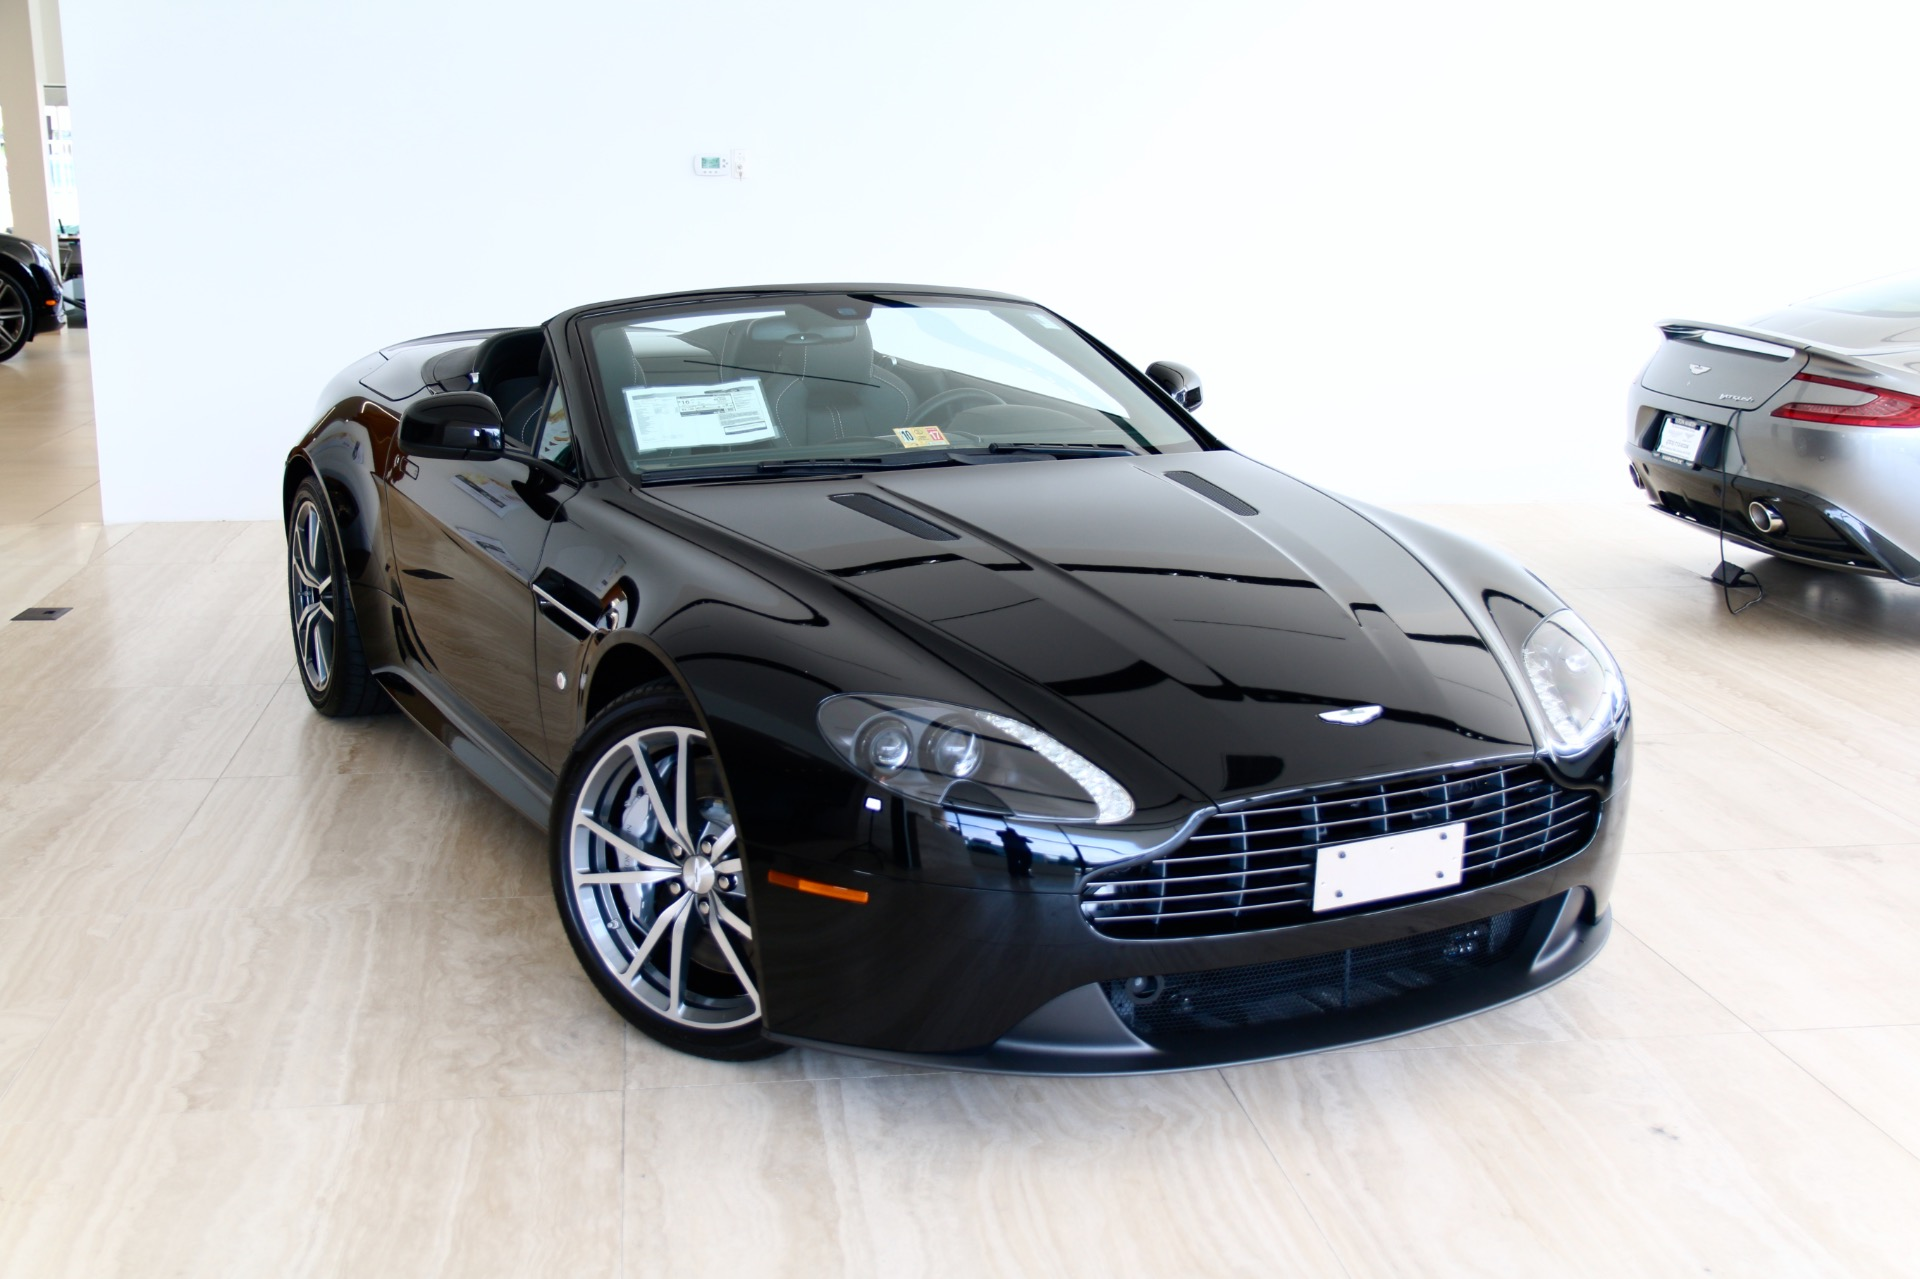 2016 aston martin v8 vantage gt roadster stock 6d20078 for sale near vienna va va aston. Black Bedroom Furniture Sets. Home Design Ideas